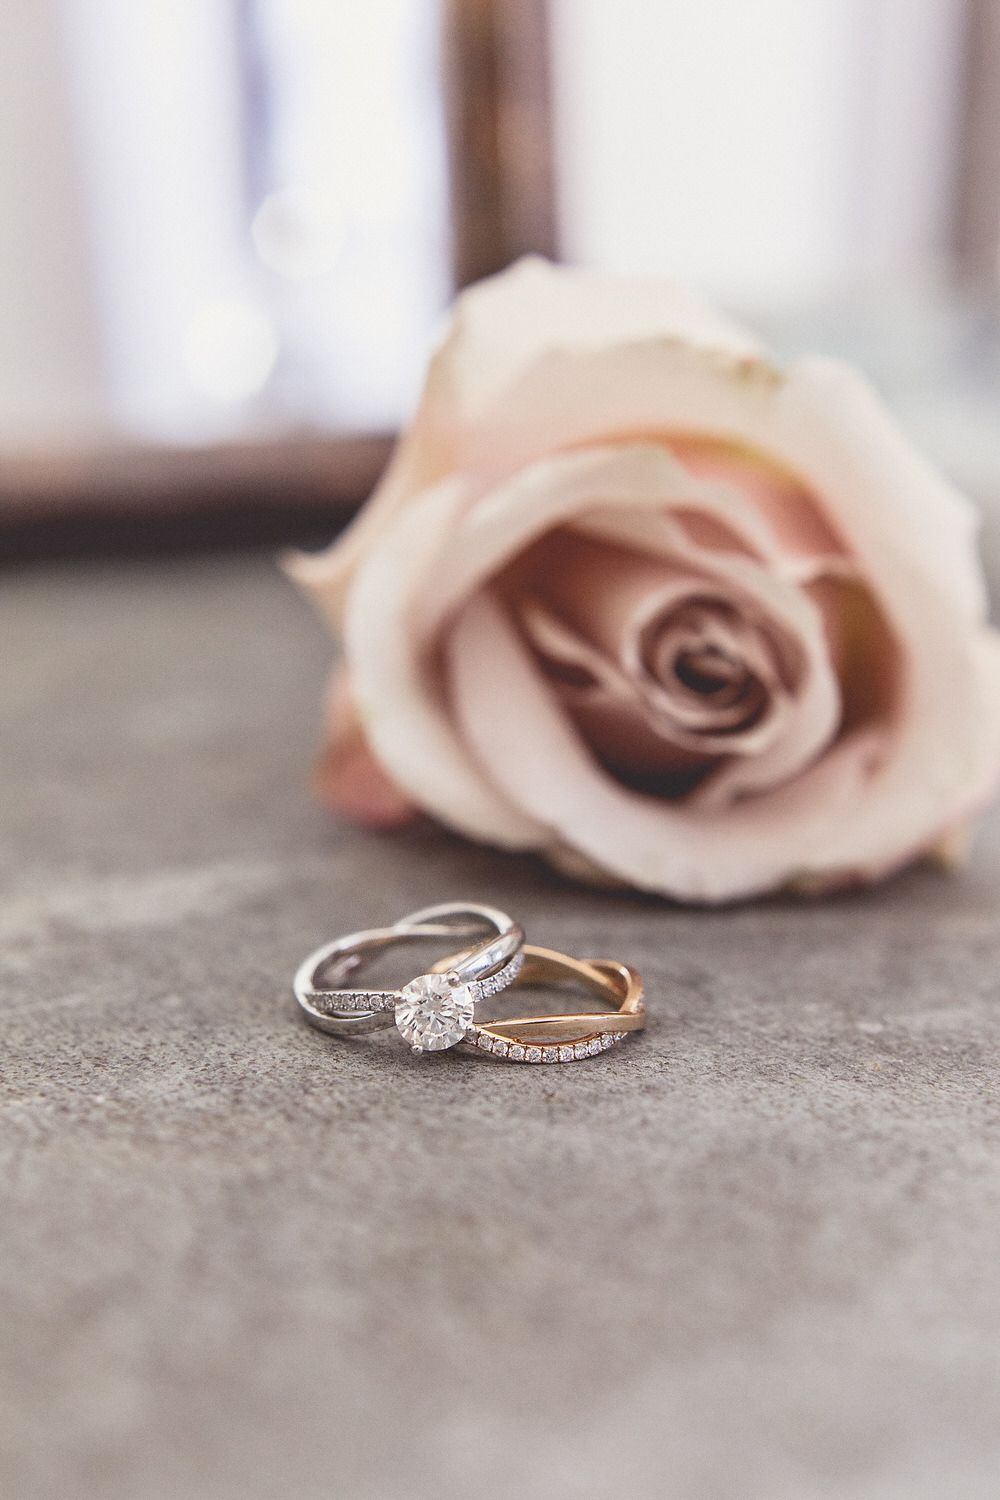 De beers engagement and wedding rings a moment to last forever